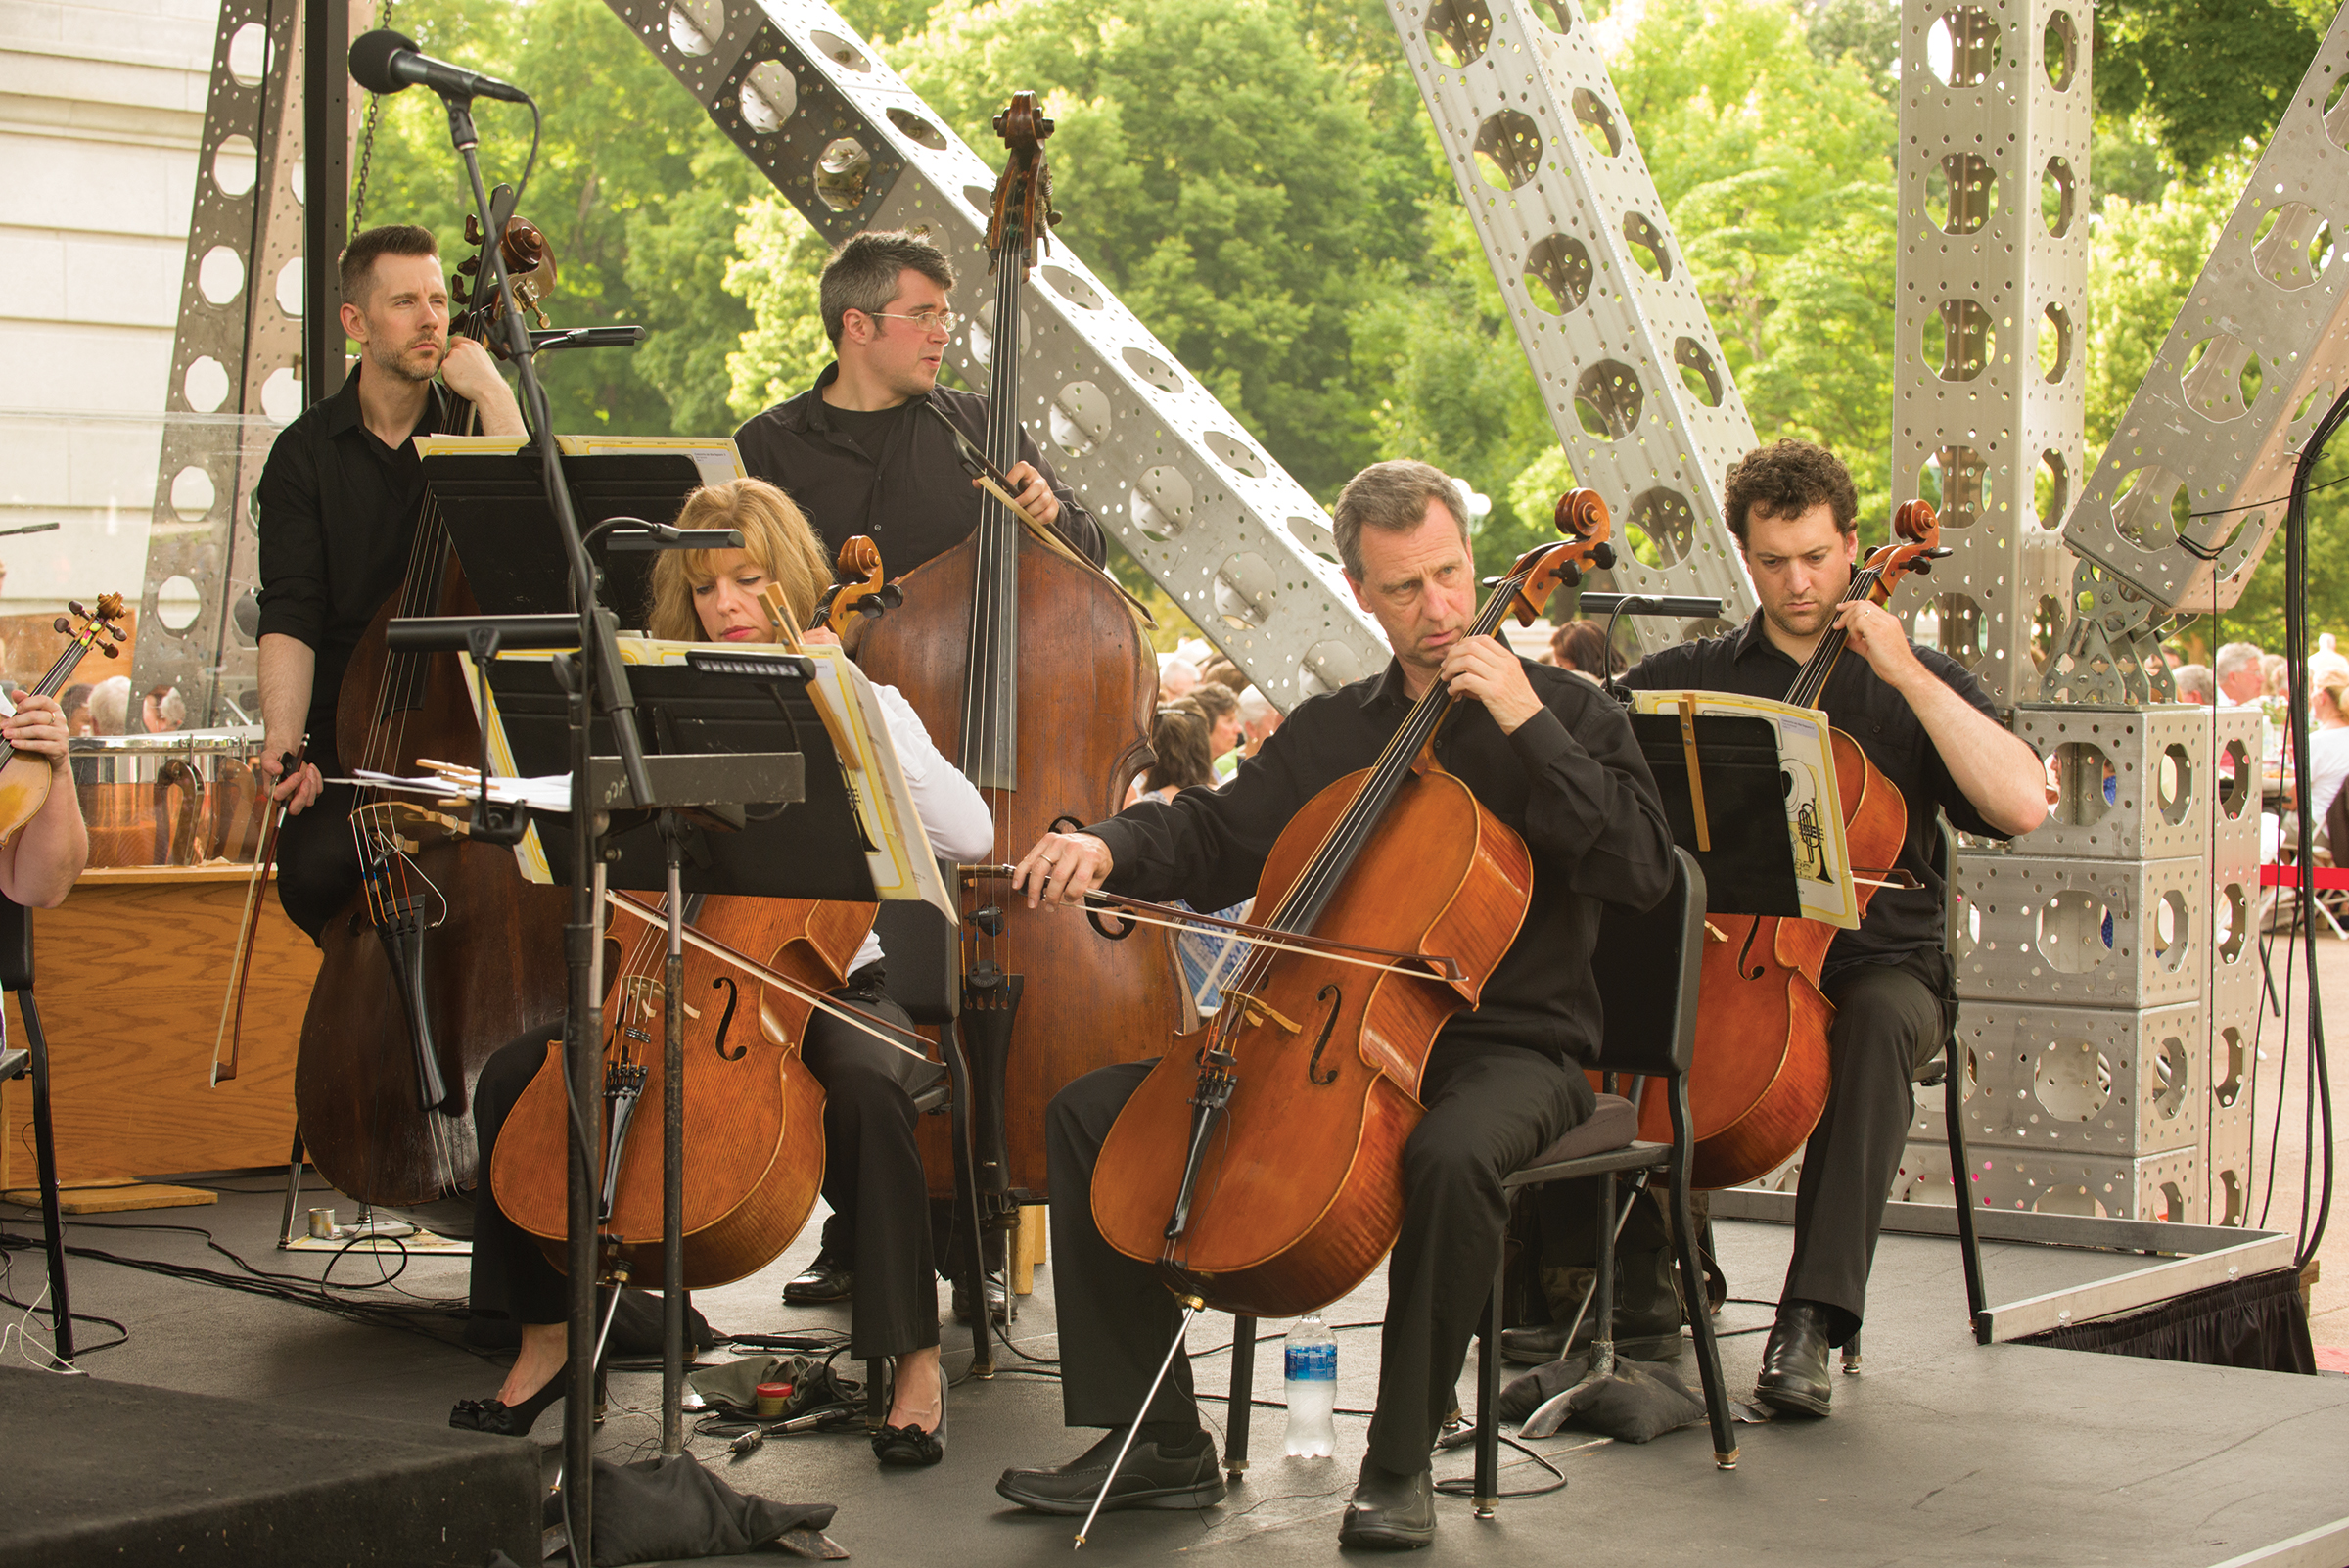 Cellists perform under the Concerts on the Square shell